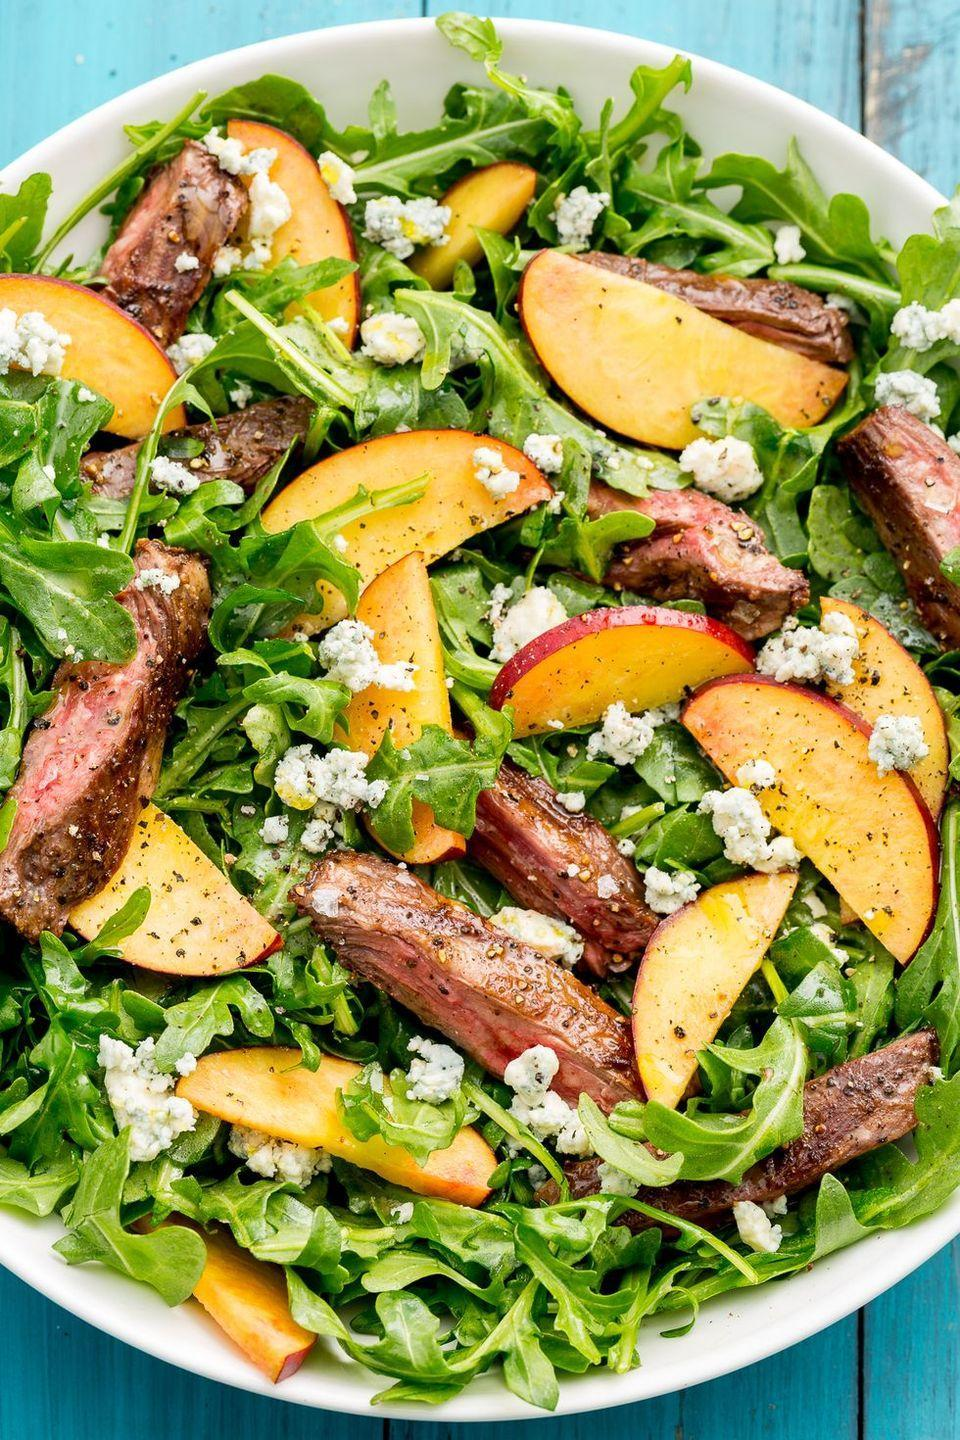 """<p>Peppery rocket is the perfect vessel for this savoury-sweet combo.</p><p>Get the <a href=""""https://www.delish.com/uk/cooking/recipes/a32998377/balsamic-grilled-steak-salad-with-peaches-recipe/"""" rel=""""nofollow noopener"""" target=""""_blank"""" data-ylk=""""slk:Balsamic Grilled Steak Salad with Peaches"""" class=""""link rapid-noclick-resp"""">Balsamic Grilled Steak Salad with Peaches</a> recipe. </p>"""